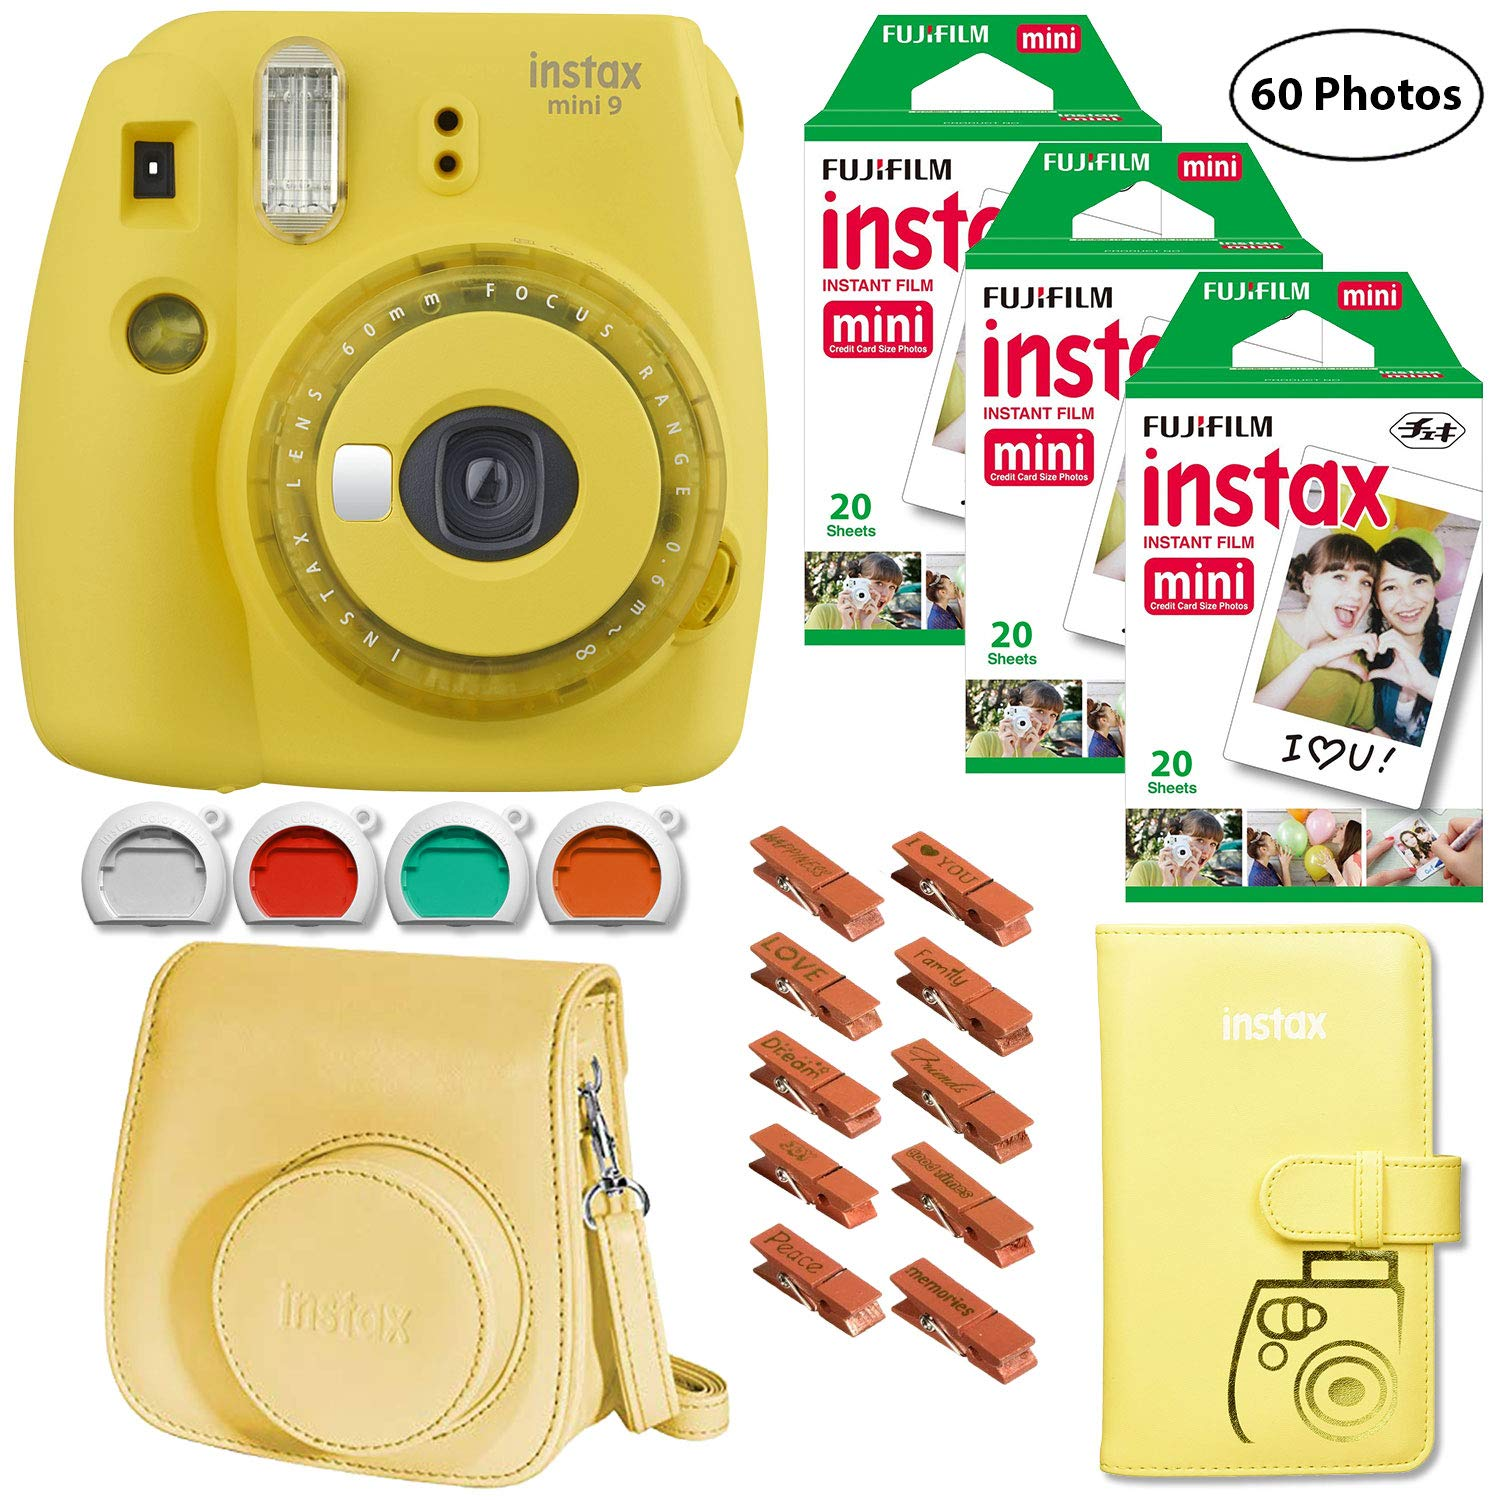 Fujifilm Instax Mini 9 (Yellow with Clear Accents), 3X Instax Film (60 Sheets), Groovy Case, Accordion Album and Hanging Pegs by Fujifilm